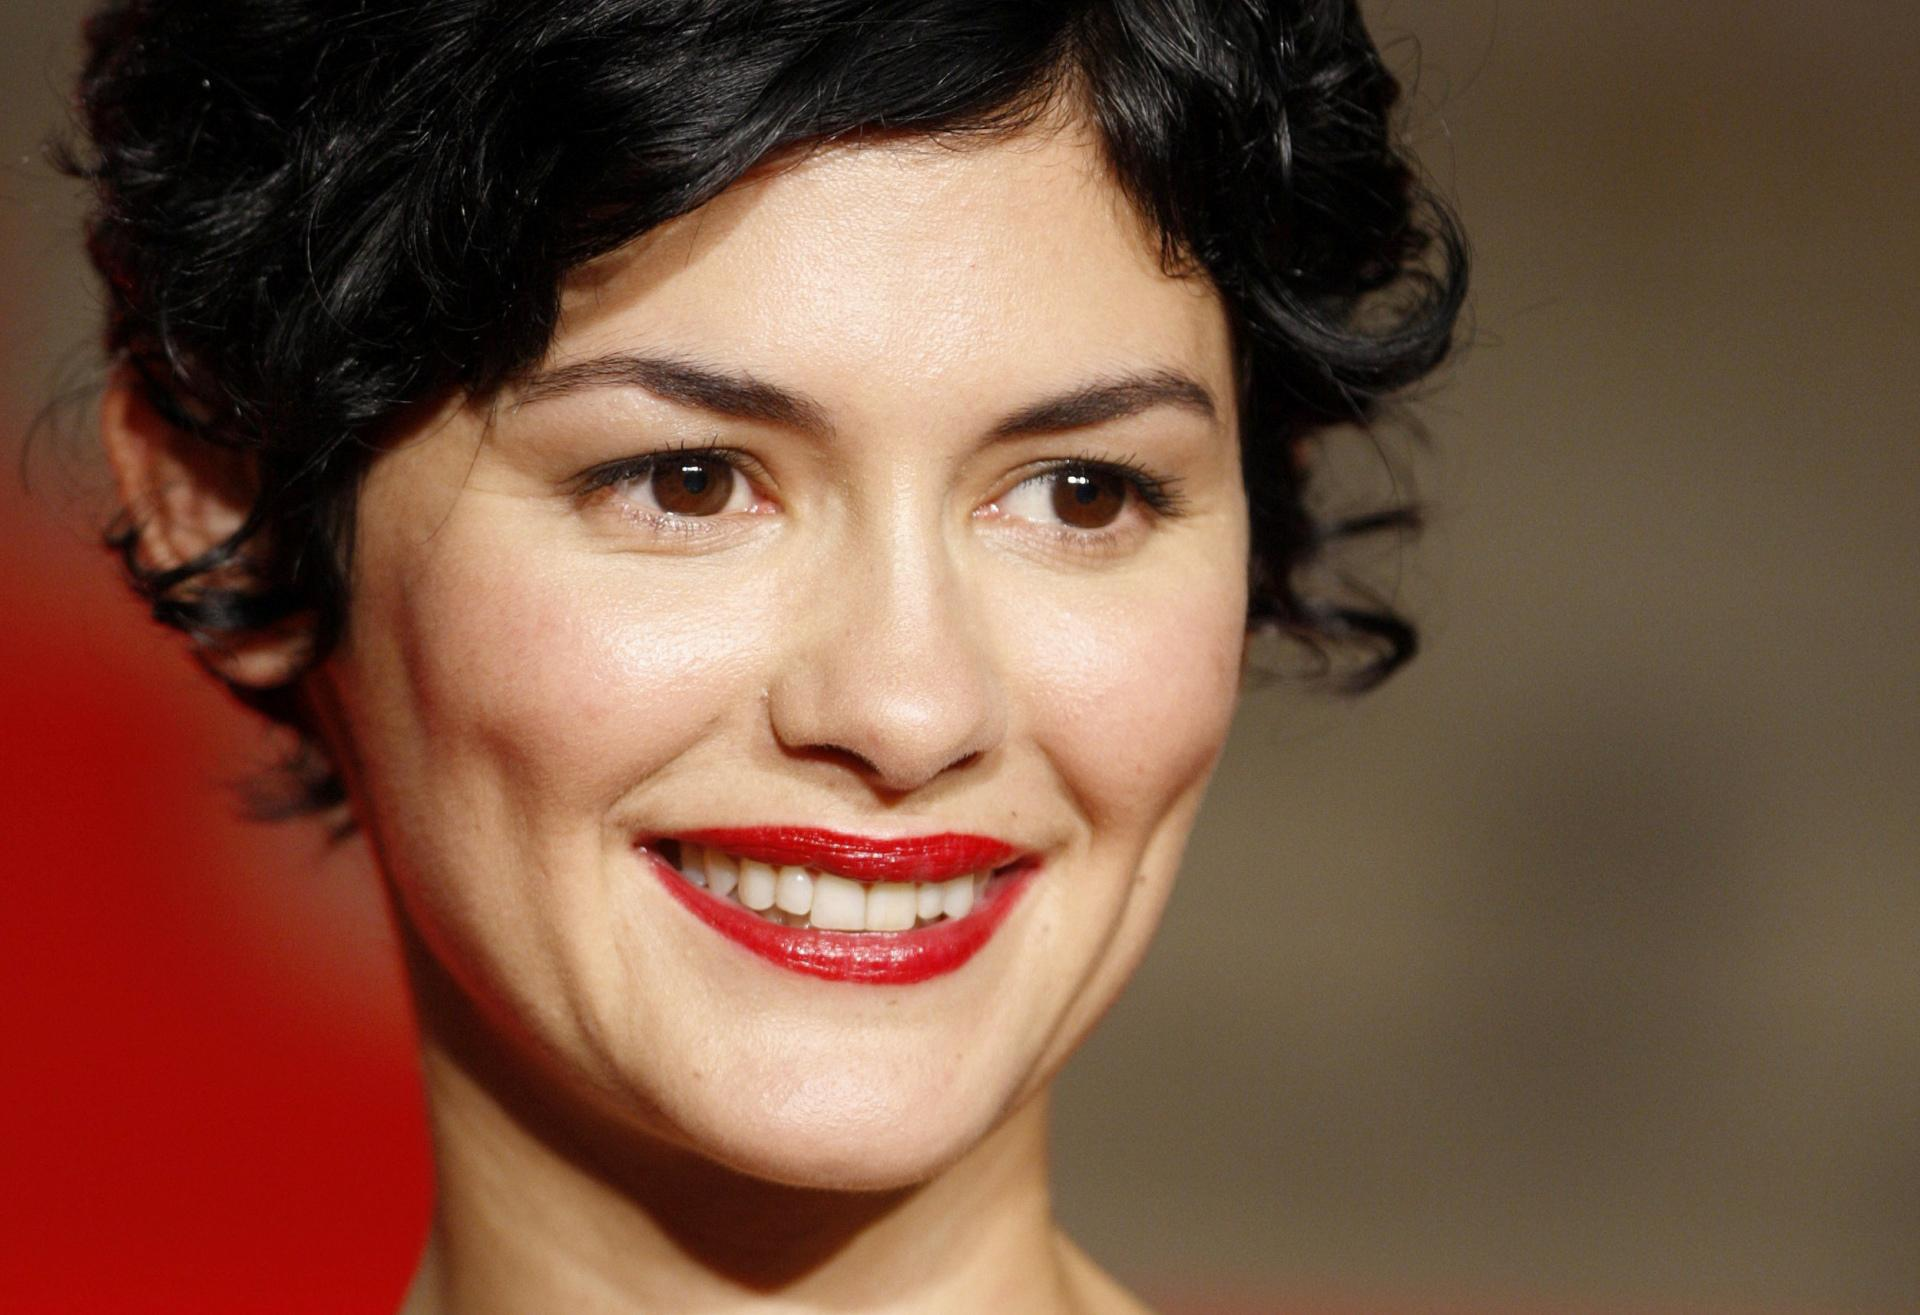 audrey tautou wallpaper hd download